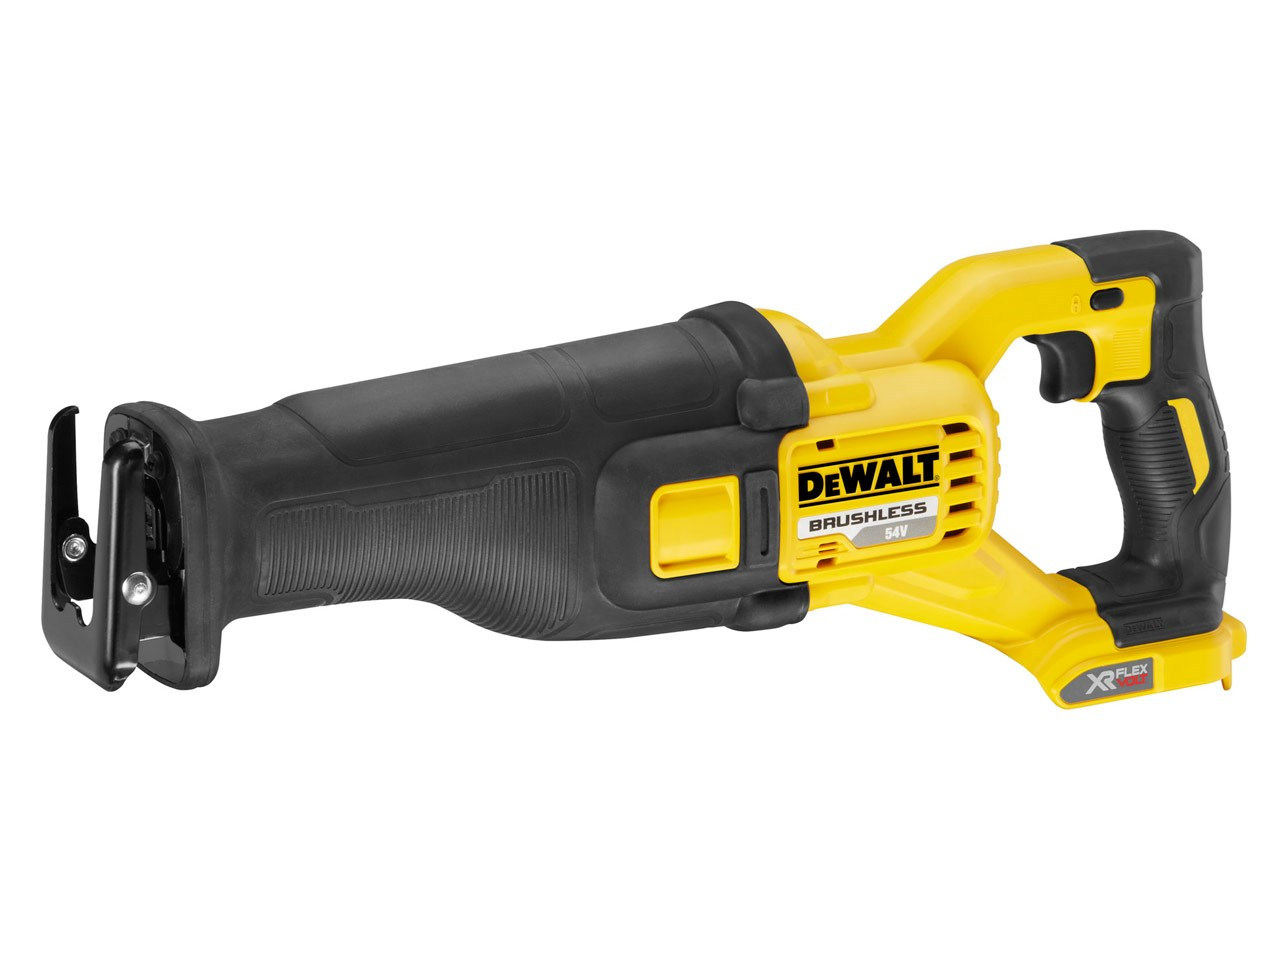 Dewalt dcs388n xj 54v xr flexvolt reciprocating saw bare unit keyboard keysfo Gallery